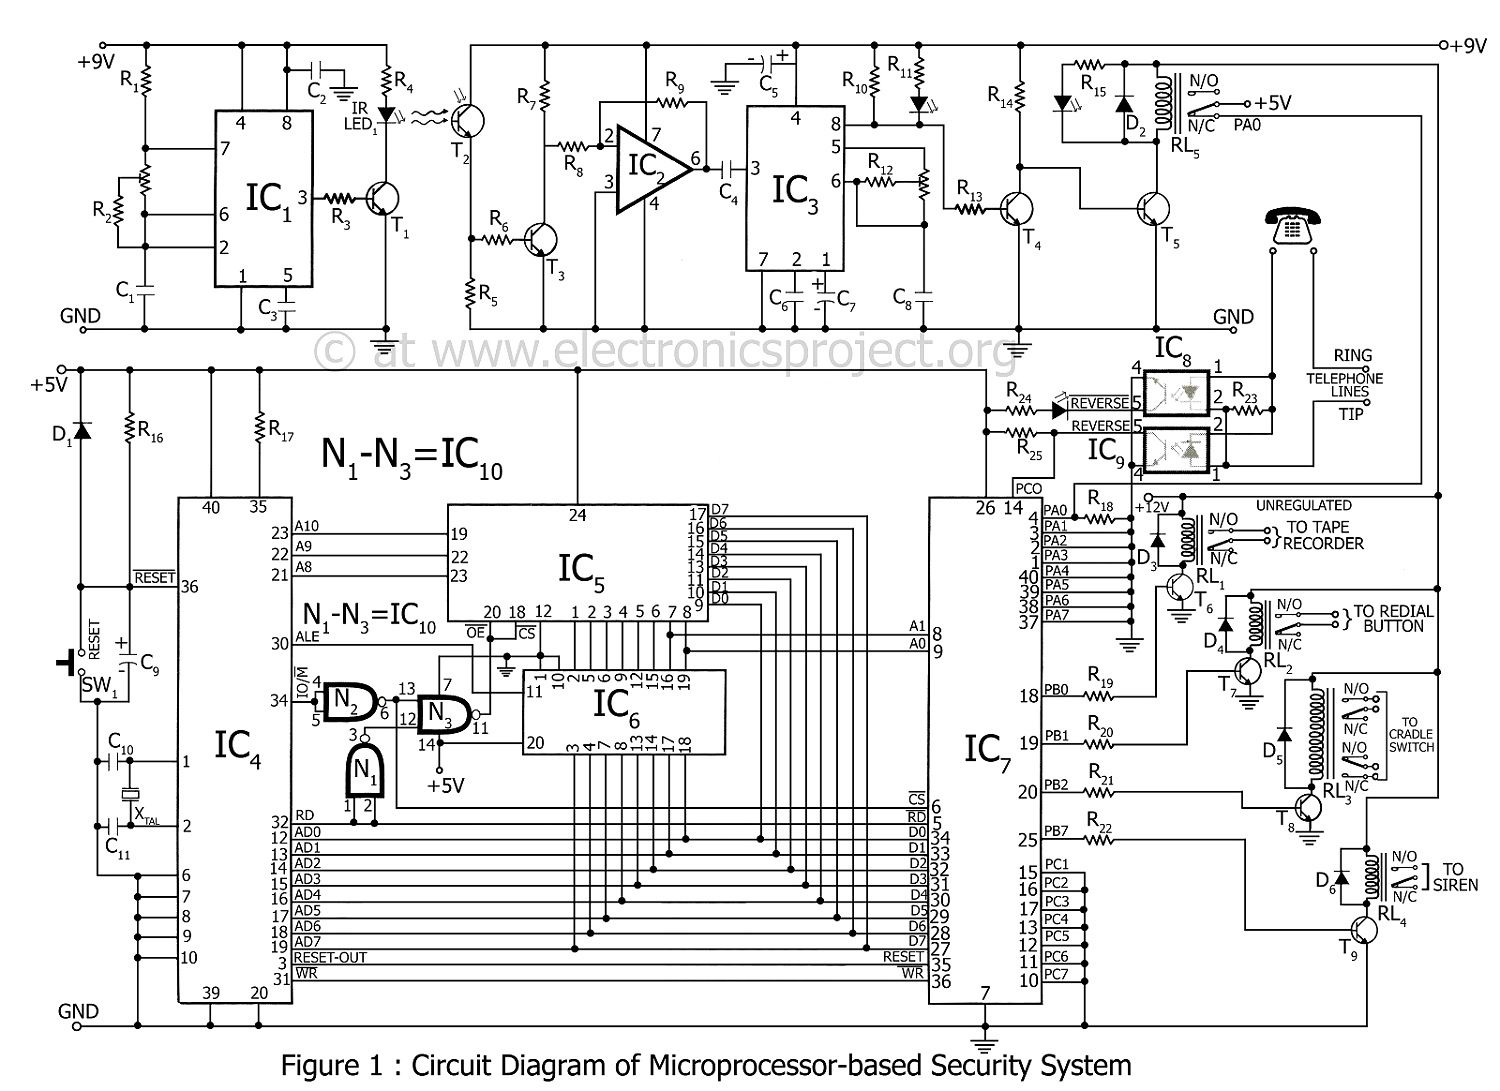 Component Microprocessor Mini Project Based Home Pirsensorbasedsecurityalarmcircuitdiagramjpg Security System Electronics Projects On 8086 Circuit Diagr Elcrost